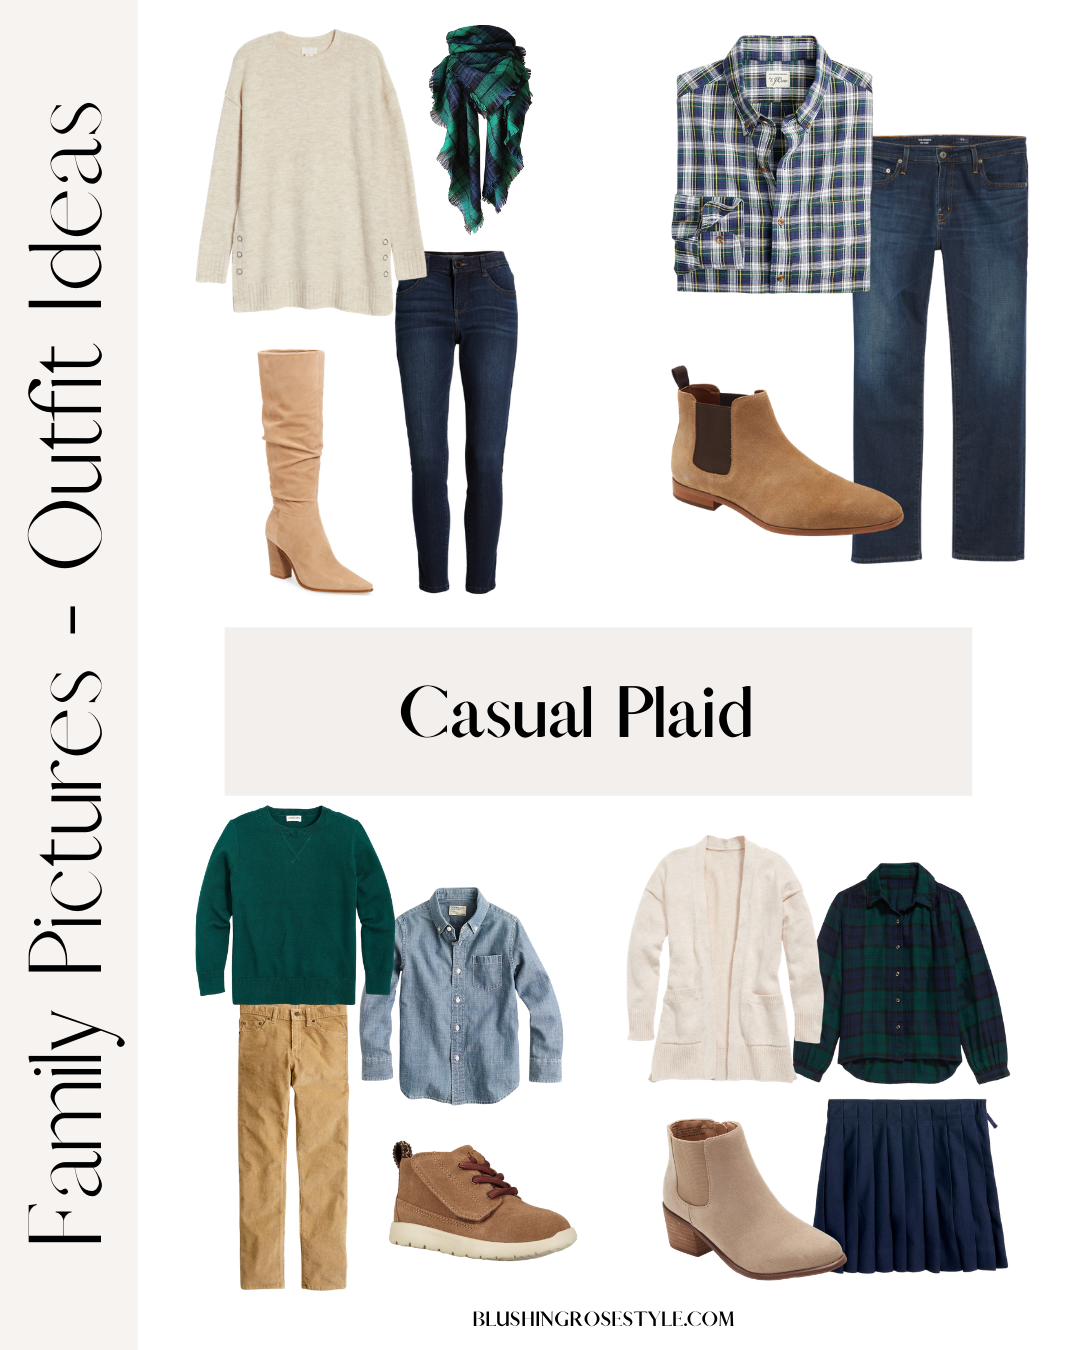 Casual plaid outfit ideas for family photos